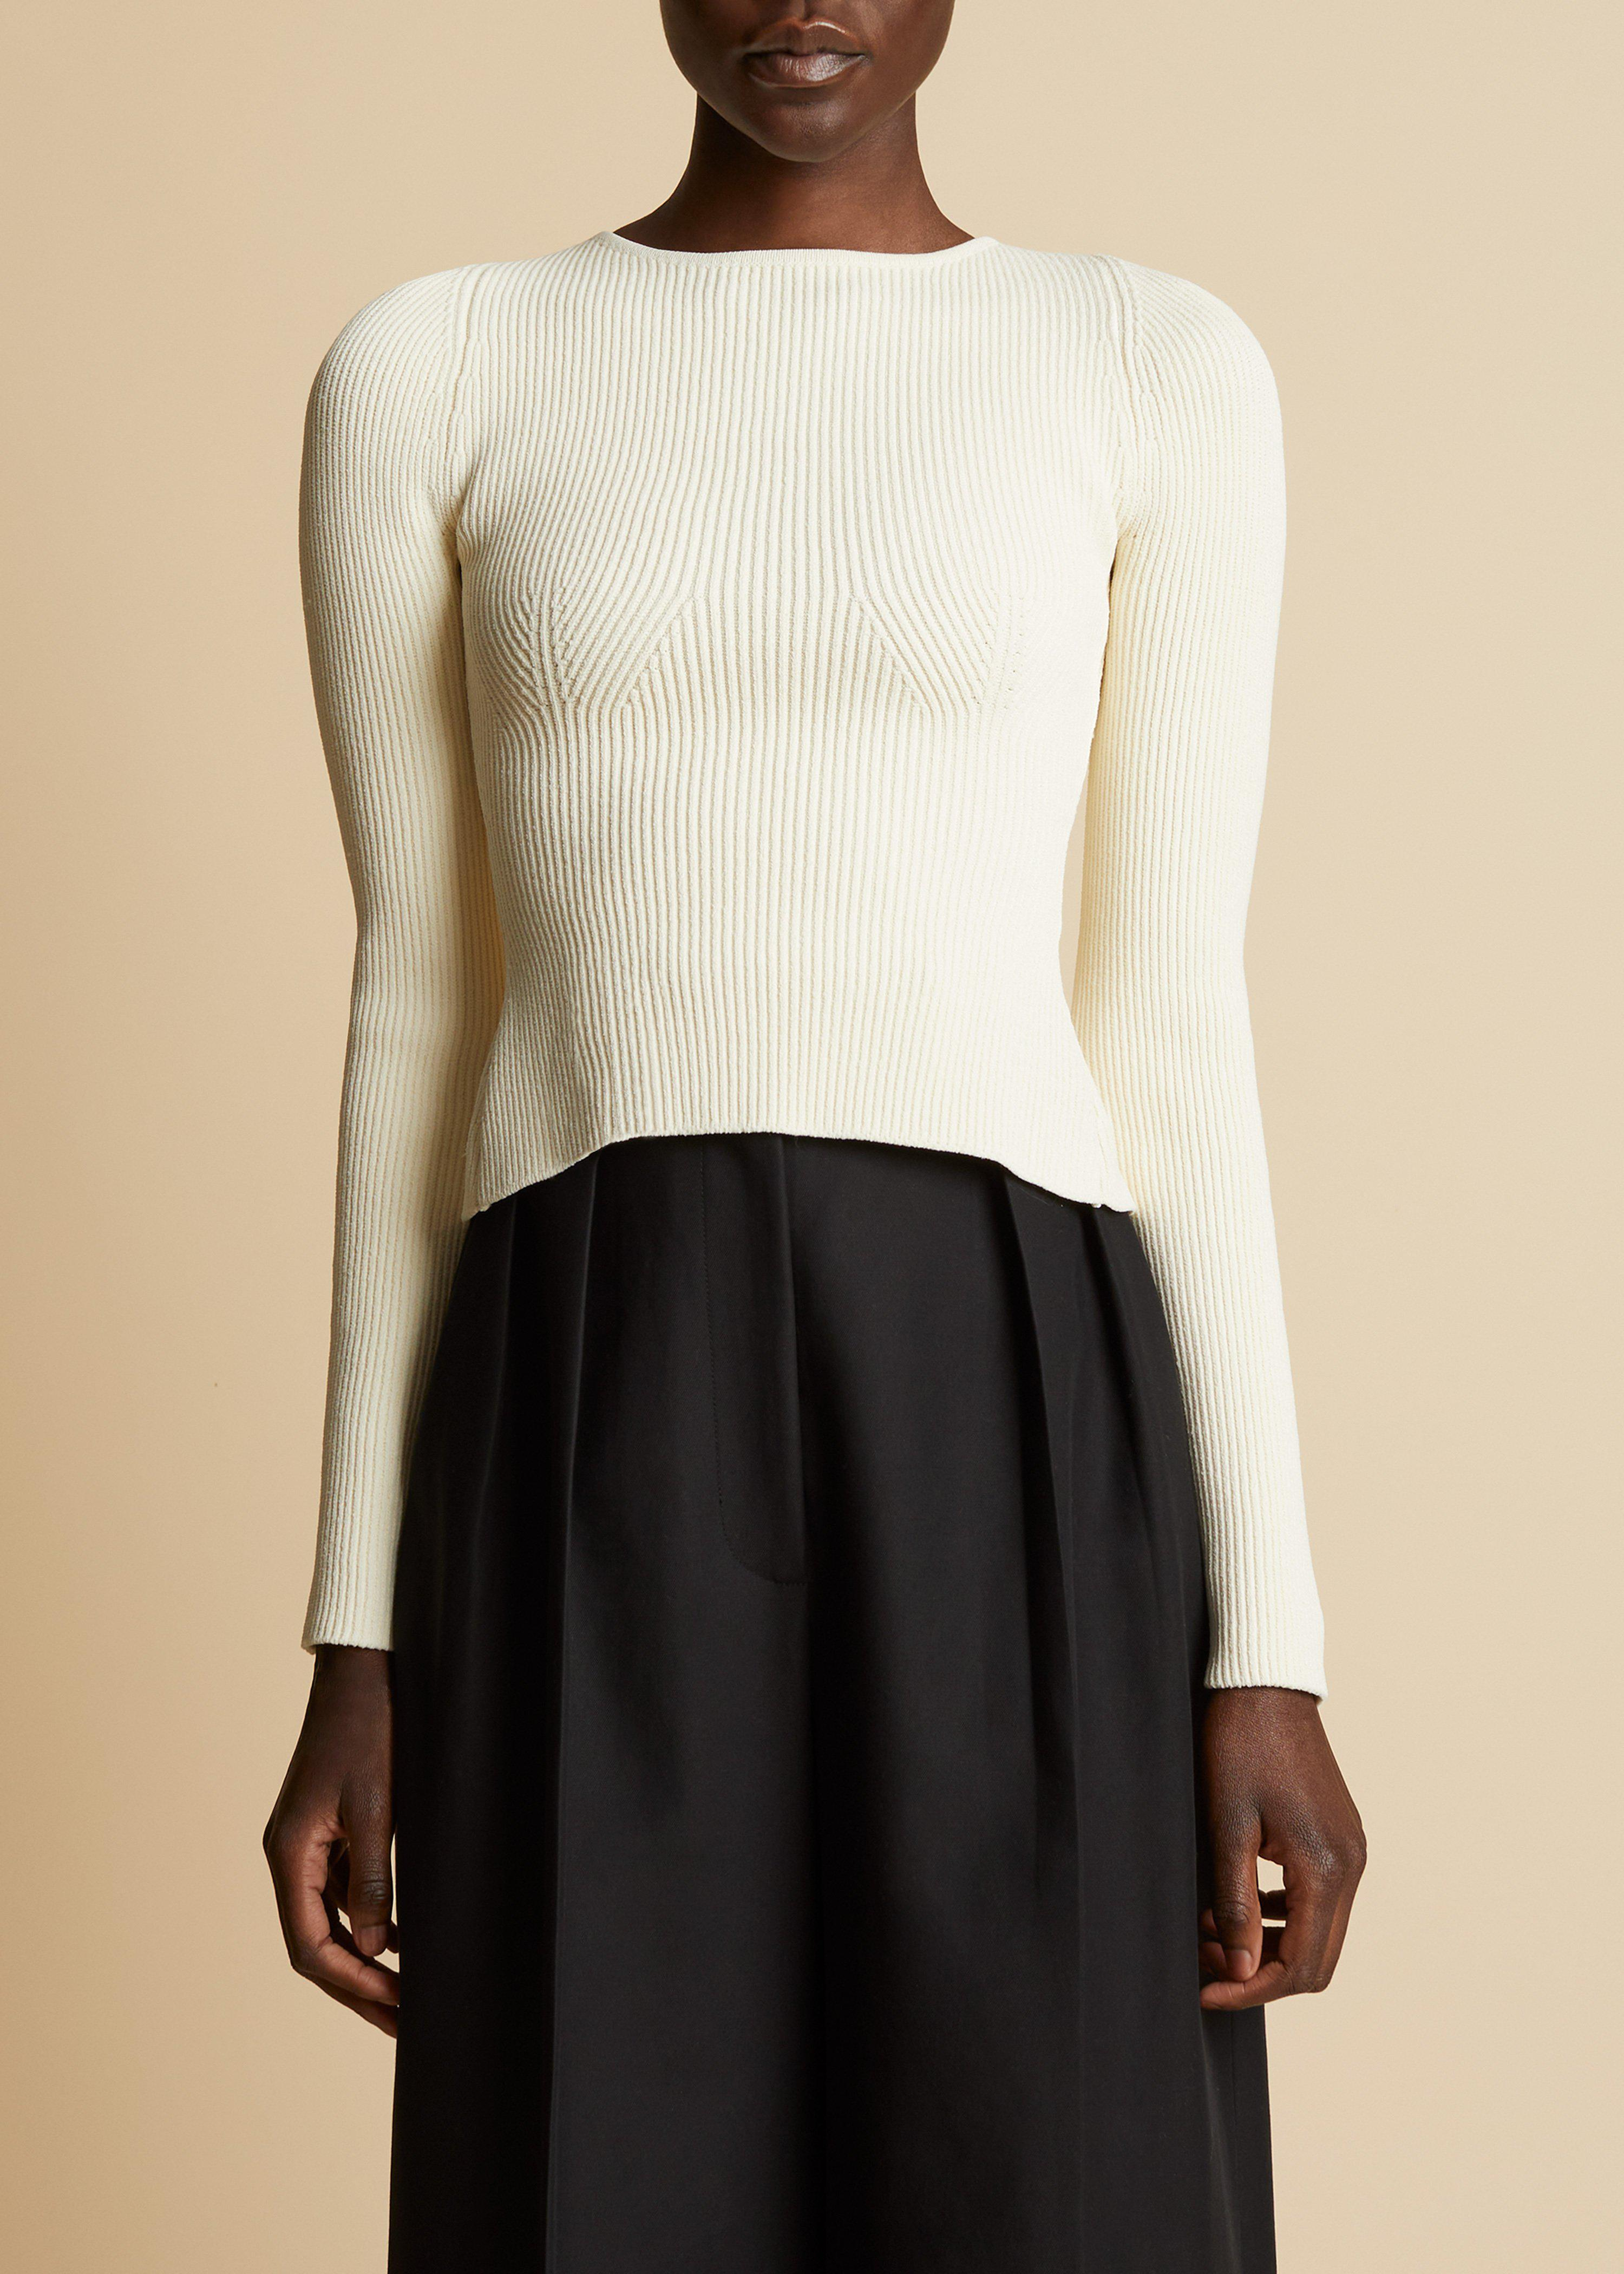 The Angelina Top in Ivory